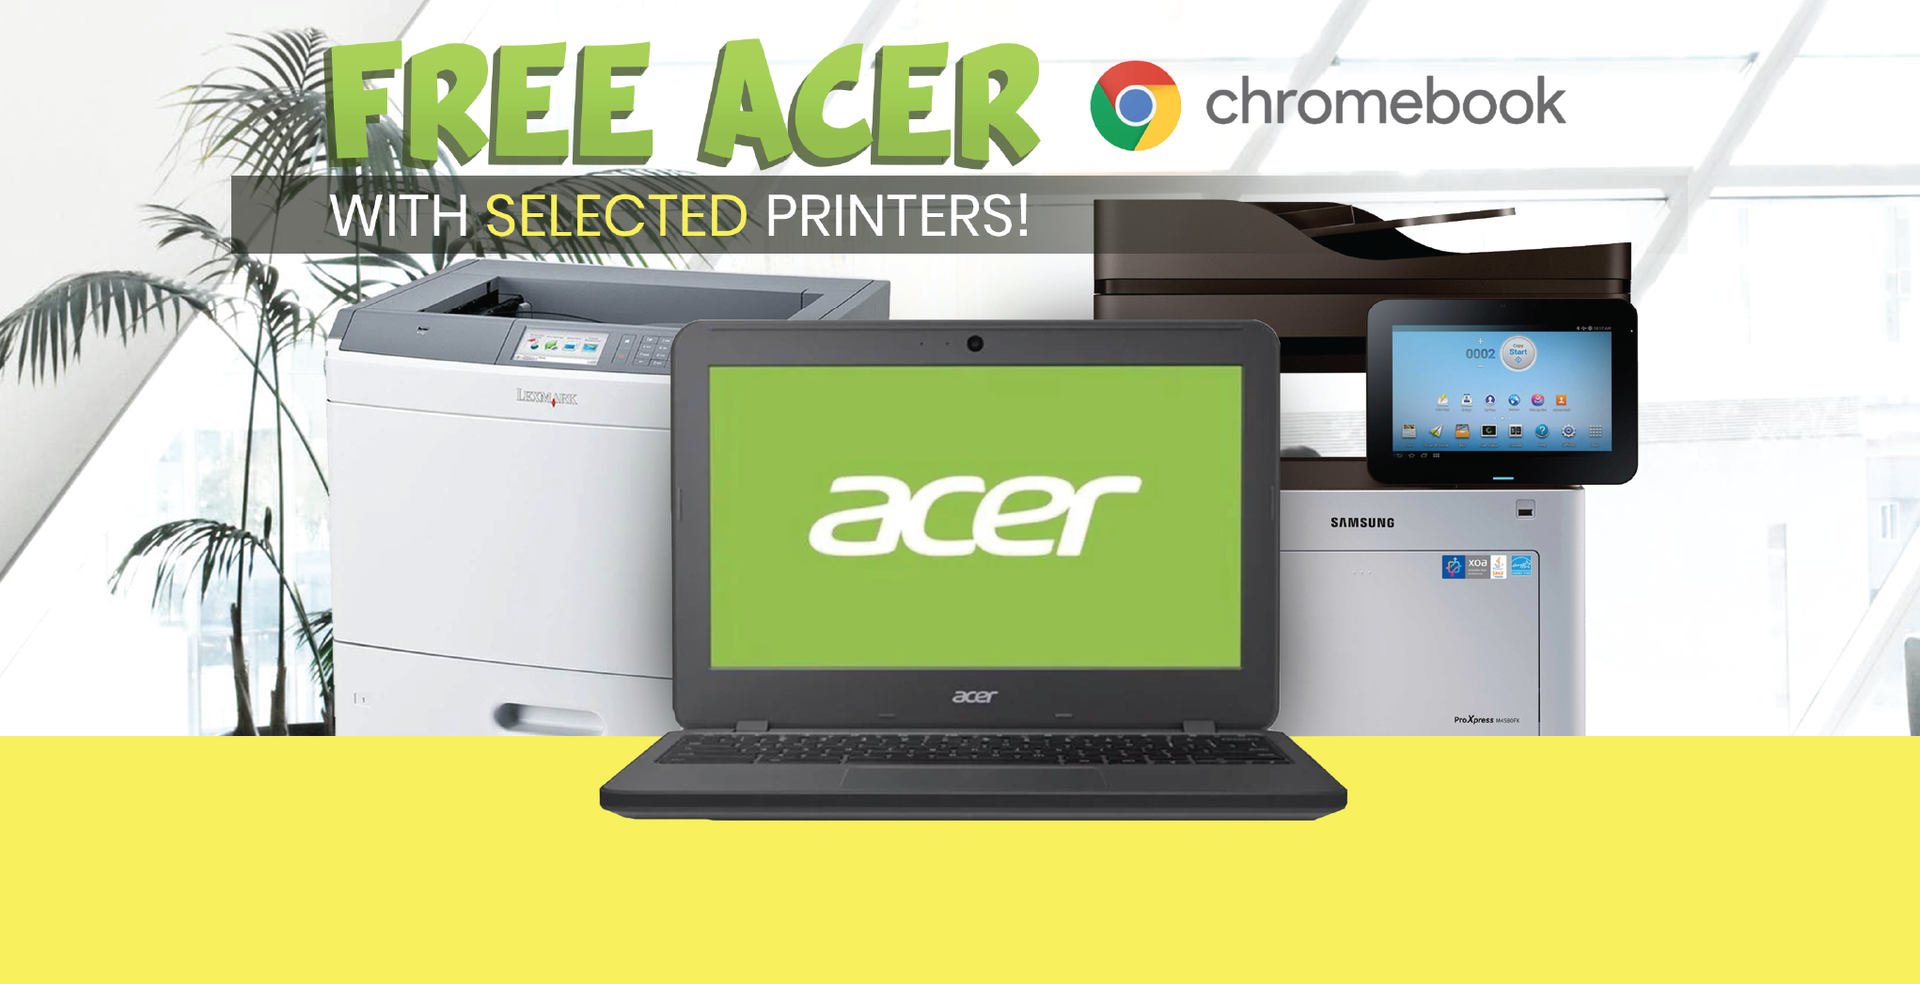 Free Acer Chromebook with Selected Printers!